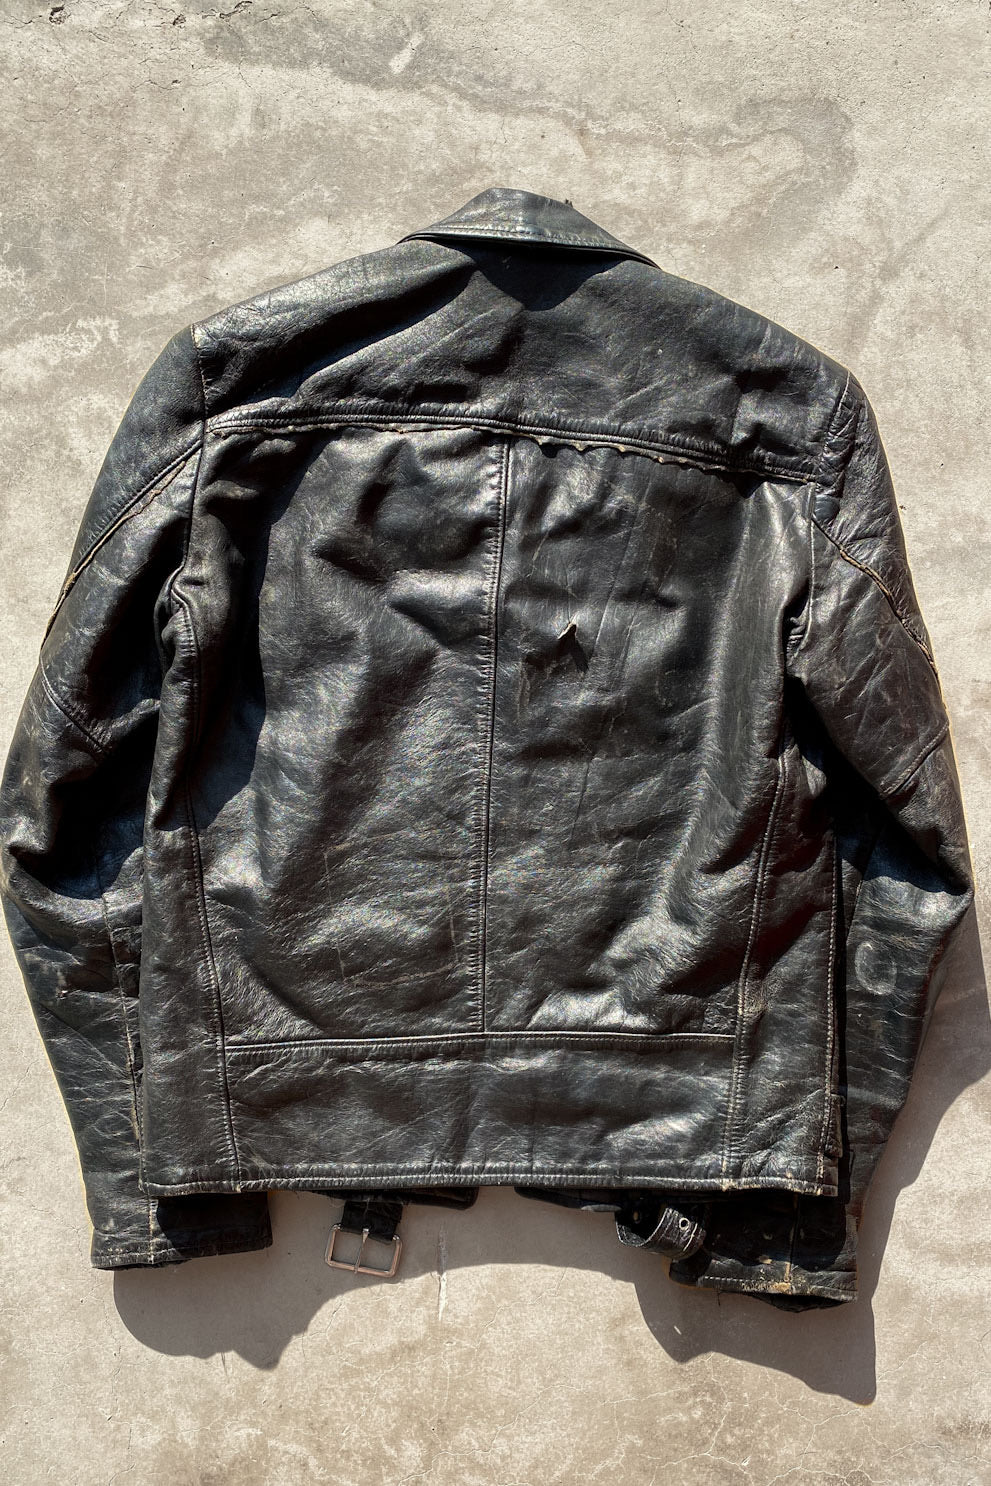 Vintage Leather Jacket II